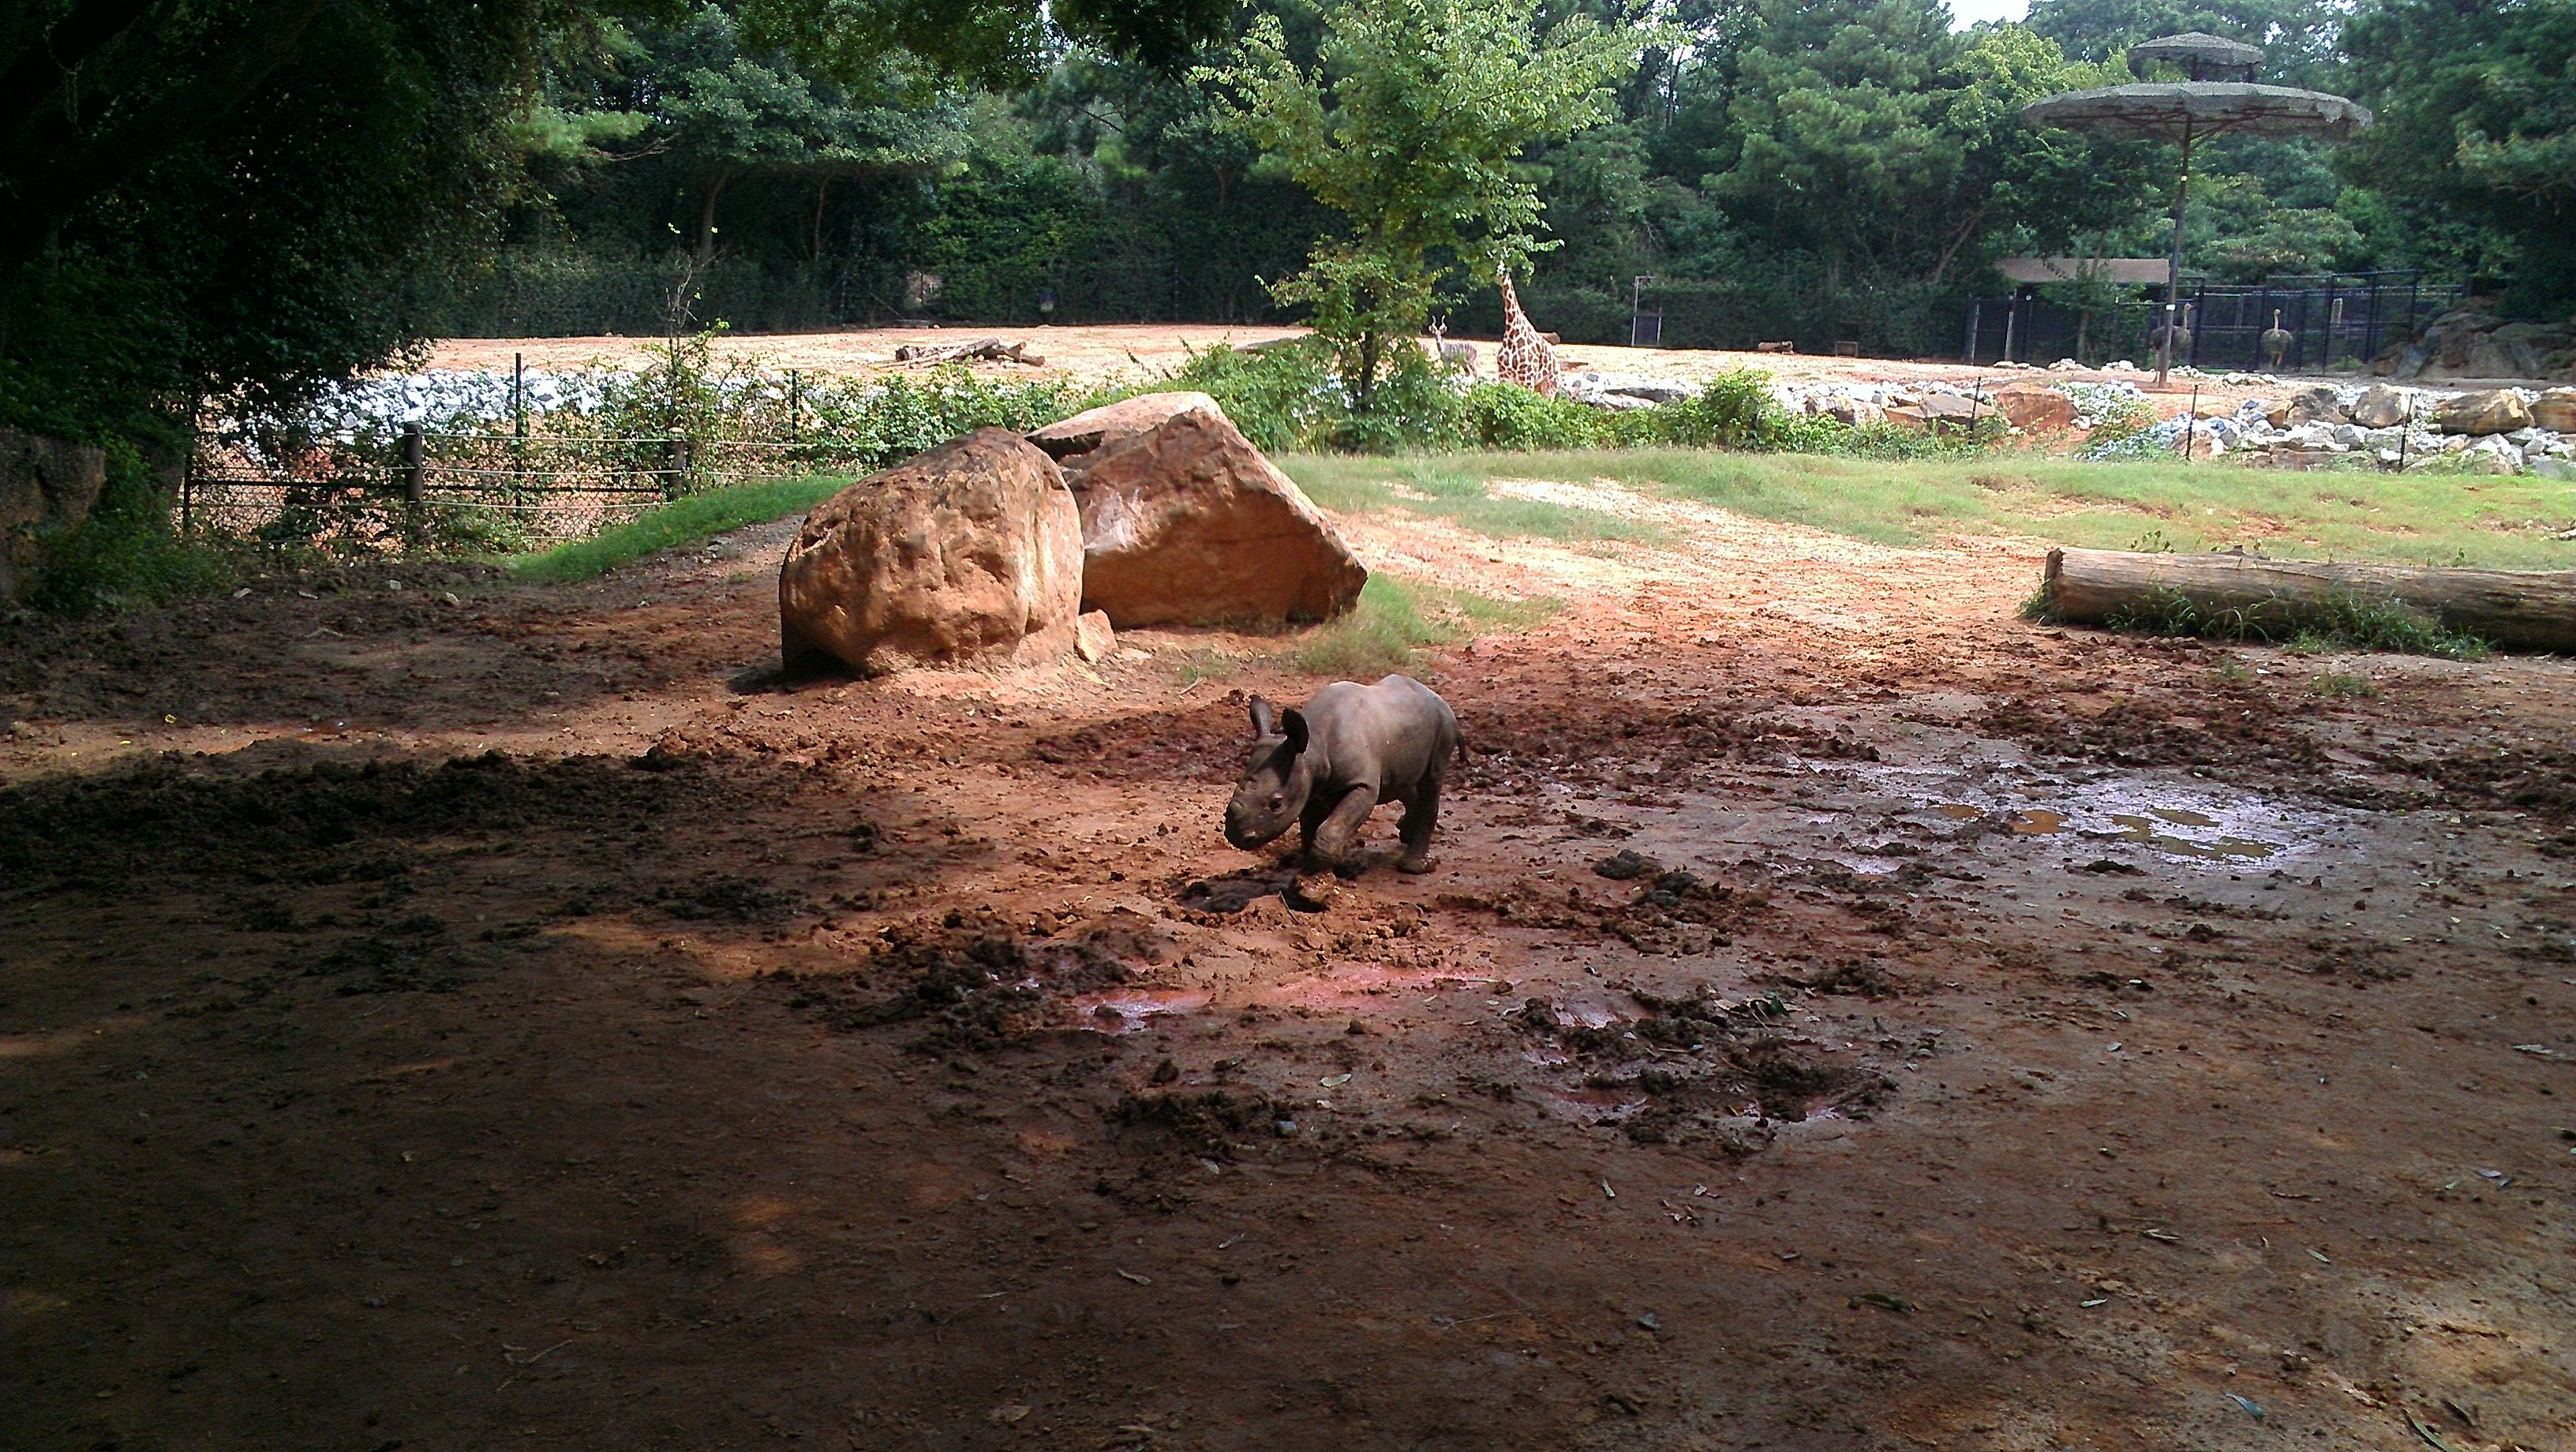 Baby's first wallow? Mammal Keeper Kim captured a peek at the 1-month-old eastern black rhino calf meeting mud. A giraffe and a lesser kudu (background) apparently agree that this is worth watching. #CutenessZooATL